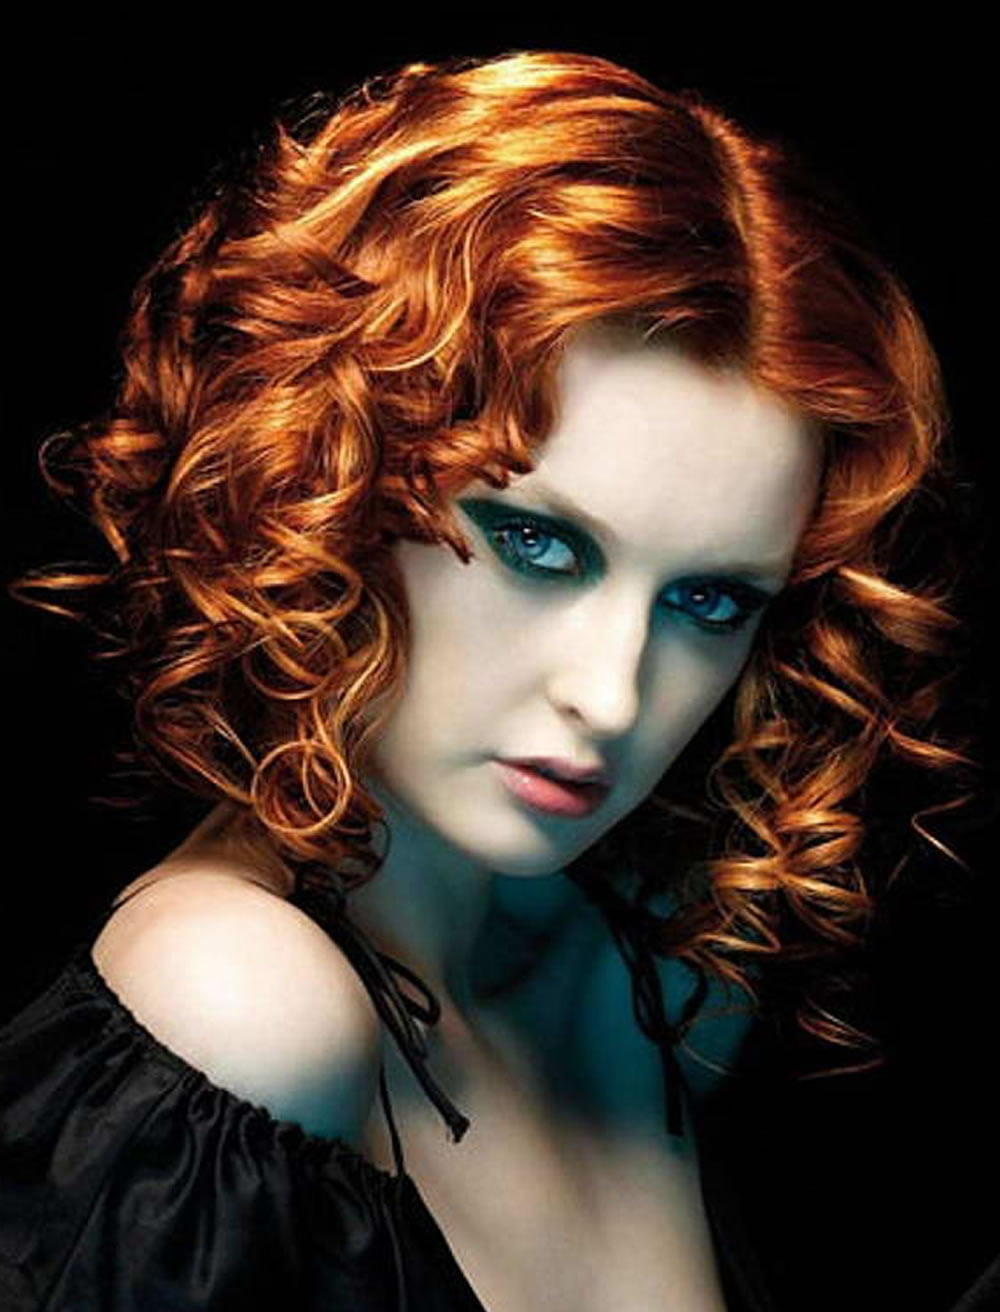 2020 Curly Bob Hairstyles for Women - 17 Perfect Short Hair Inspiration - Page 3 - HAIRSTYLES